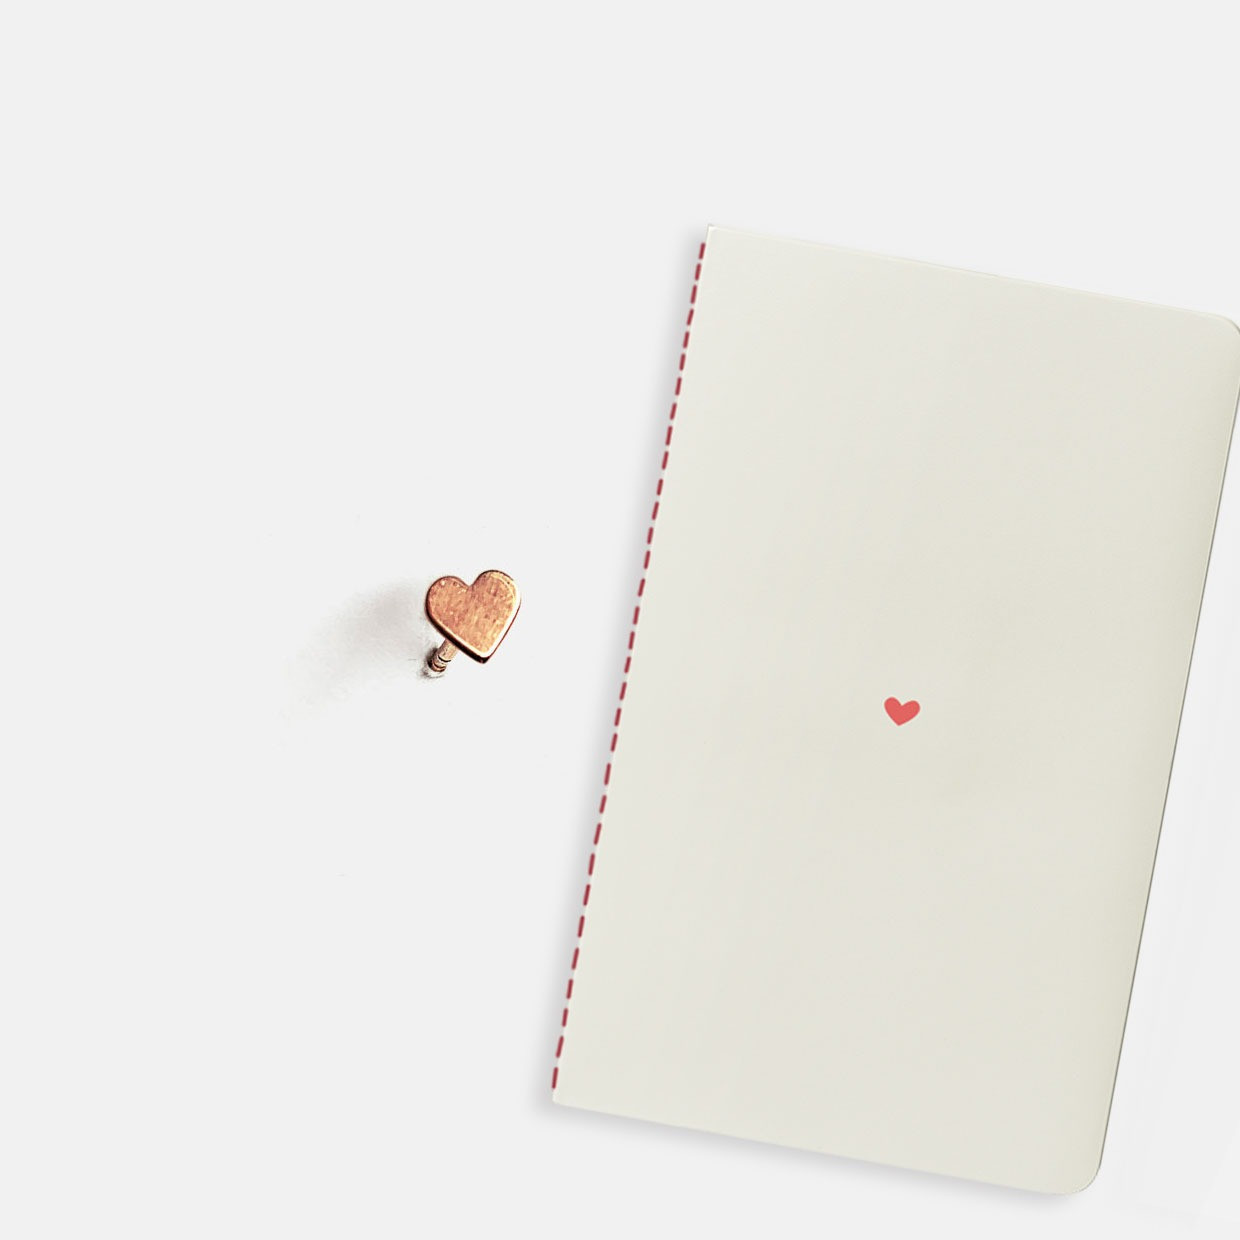 The YÉ-YÉ kit - earring cuore + notebook